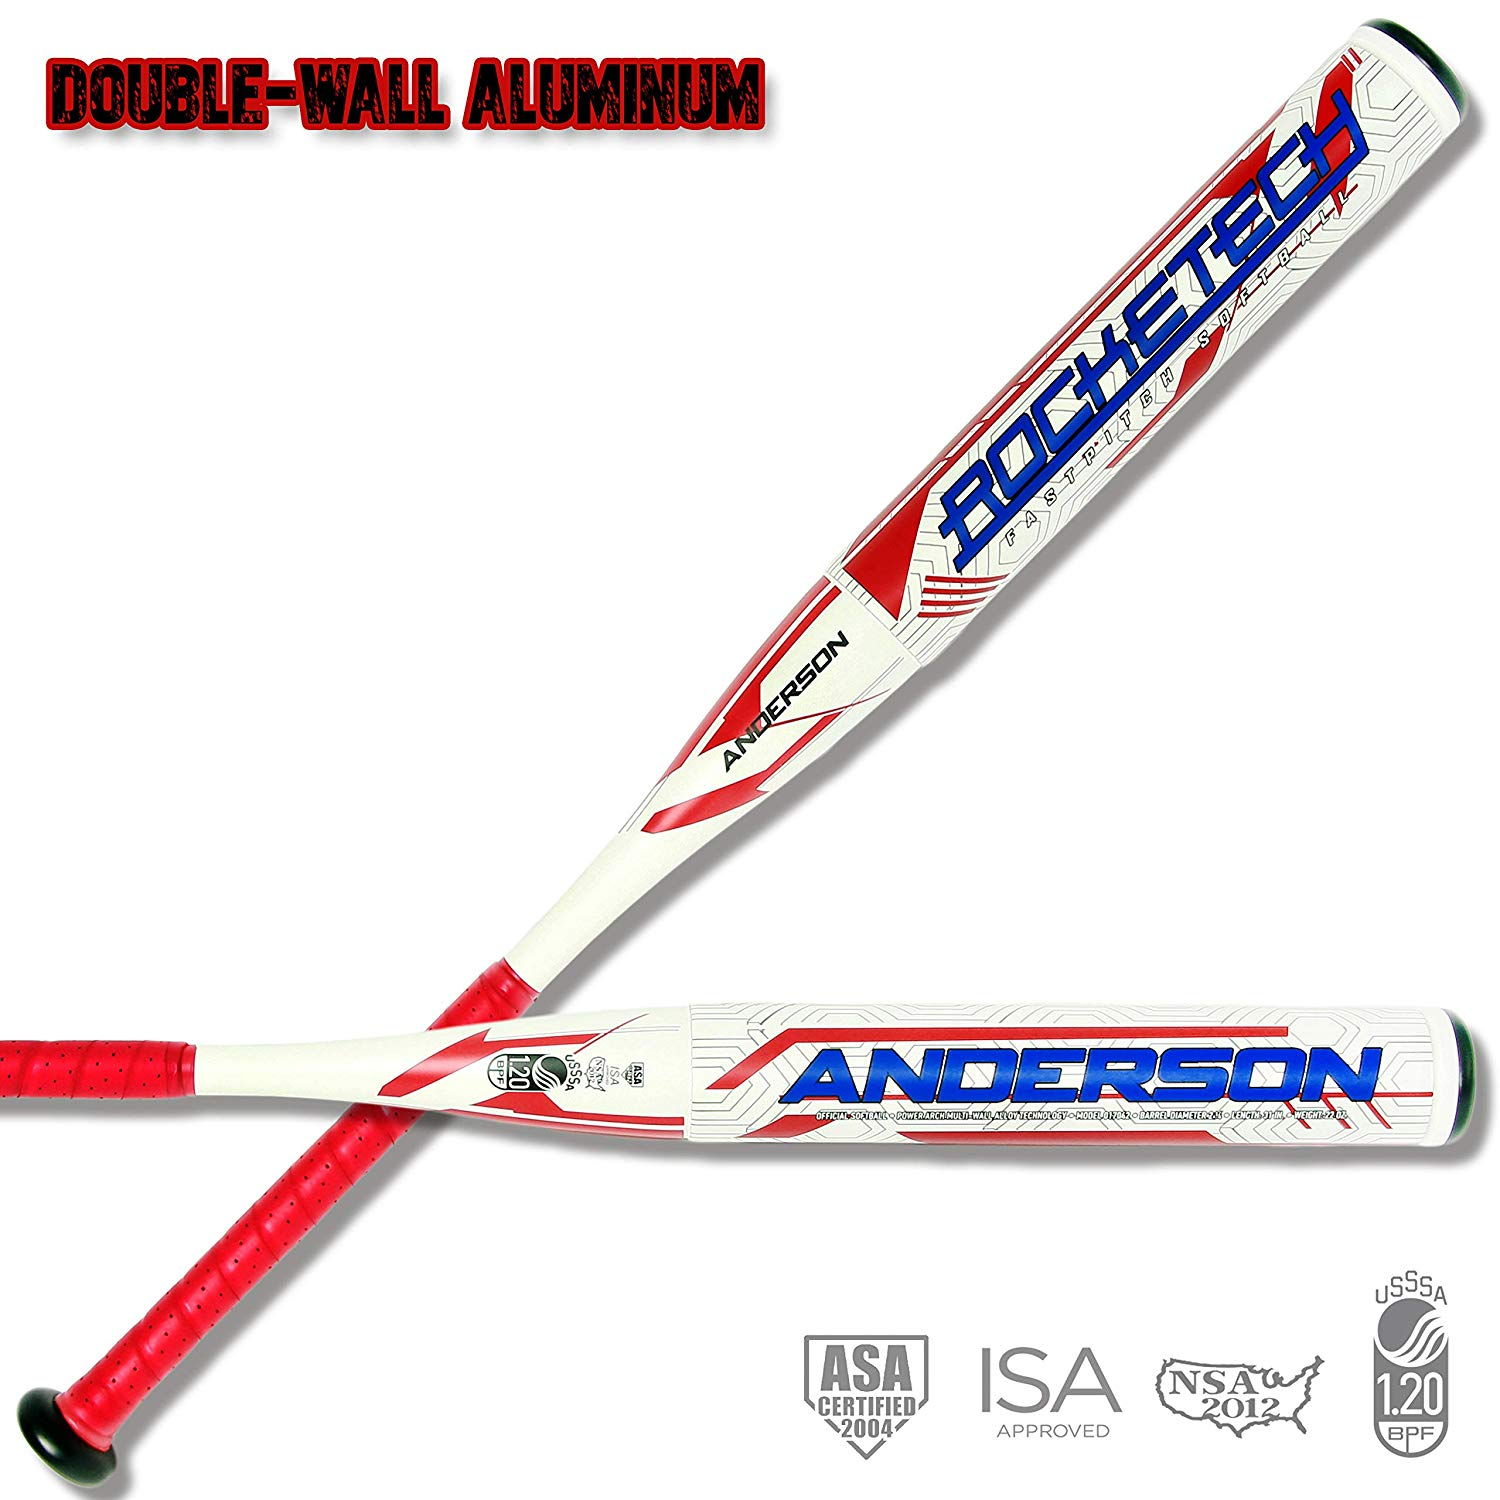 anderson-rocketech-9-double-wall-fastpitch-softball-bat-32-inch-23-oz 017042-3223 Anderson 874147009529 `-9 Drop Weight End Loaded for more POWER guaranteed! Approved By